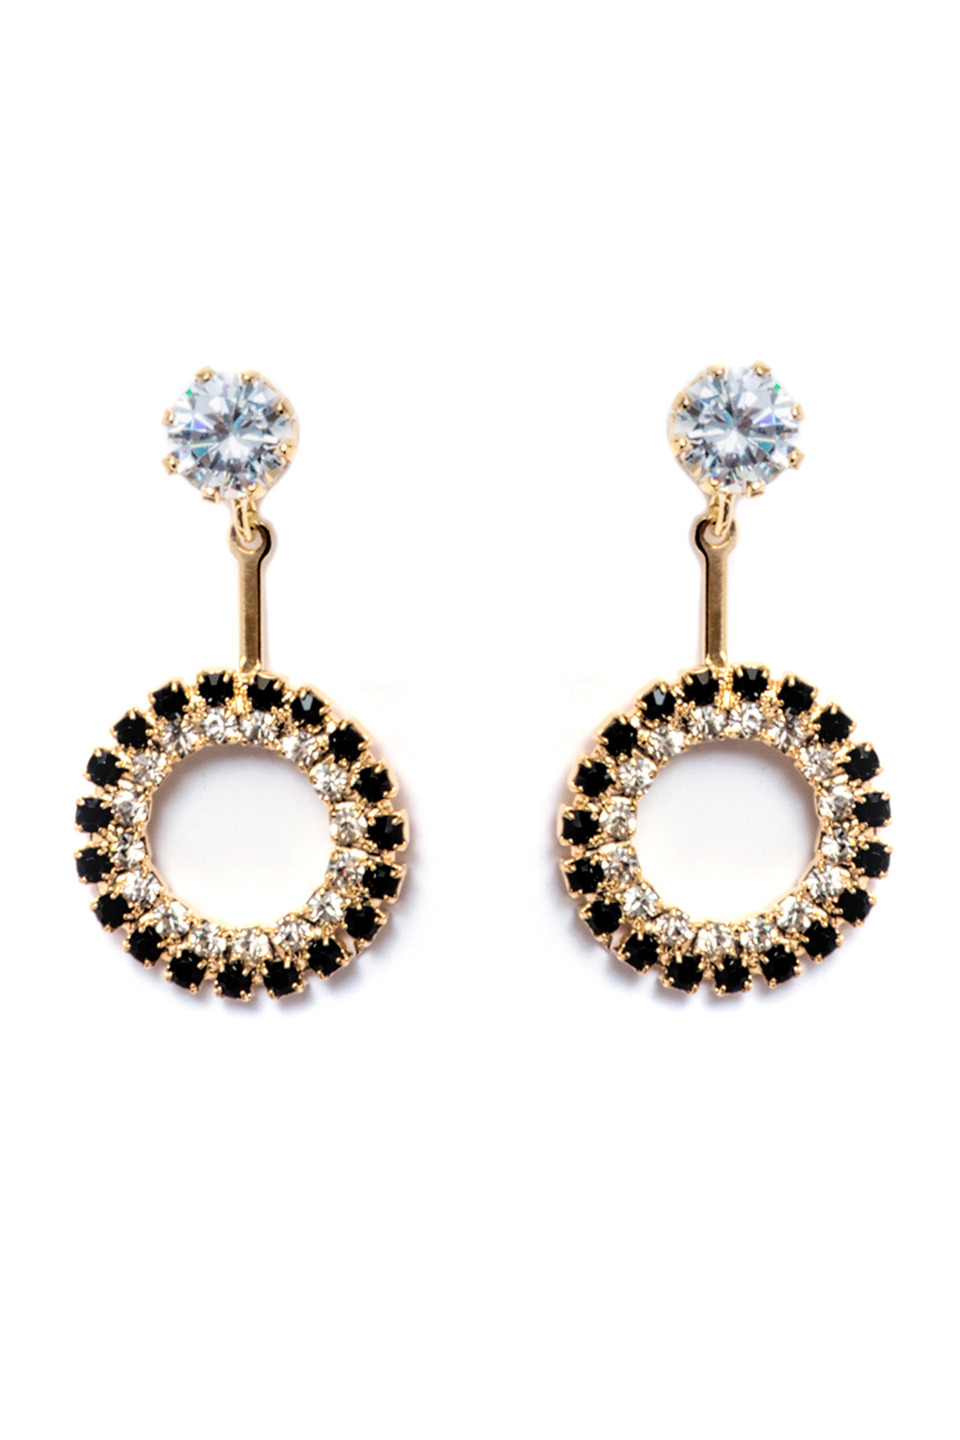 Swarovskis Open Circle Drop Earrings in 18K Gold and Black